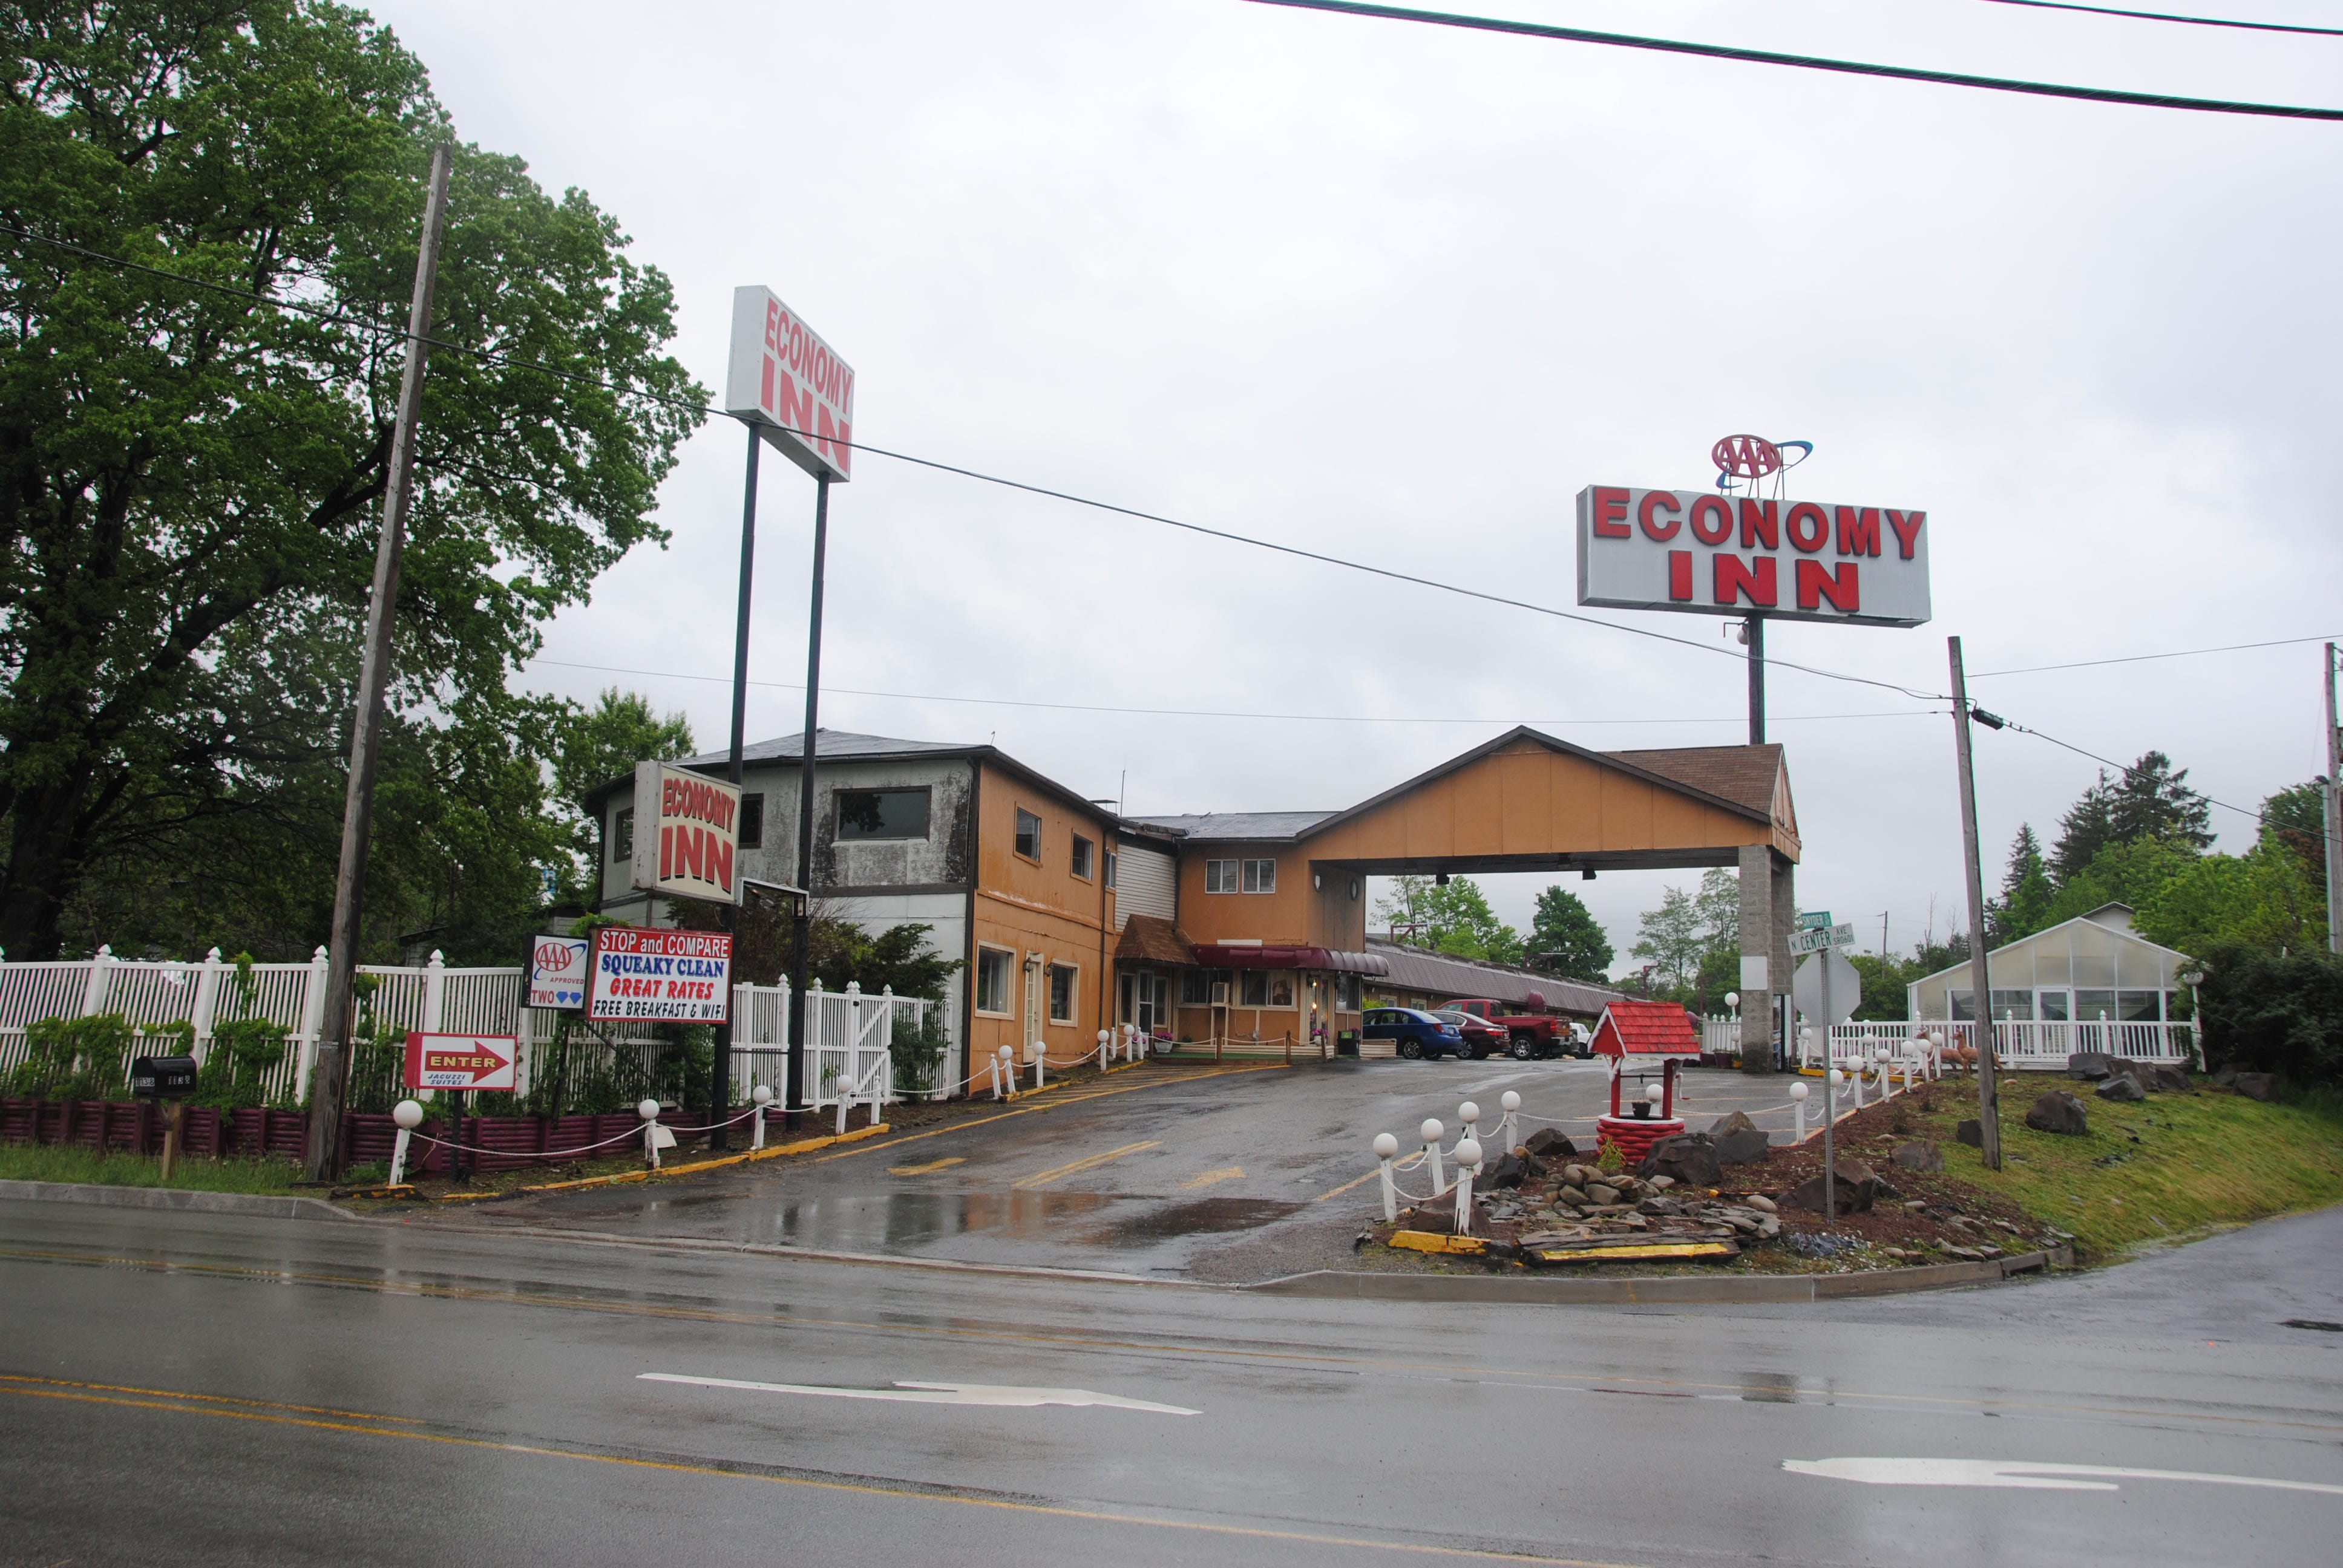 The Economy Inn at 1138 N. Center Avenue in Somerset is the home of the former Coleman Motel, where the Shuglie family had been staying when Janet and Marisa disappeared.